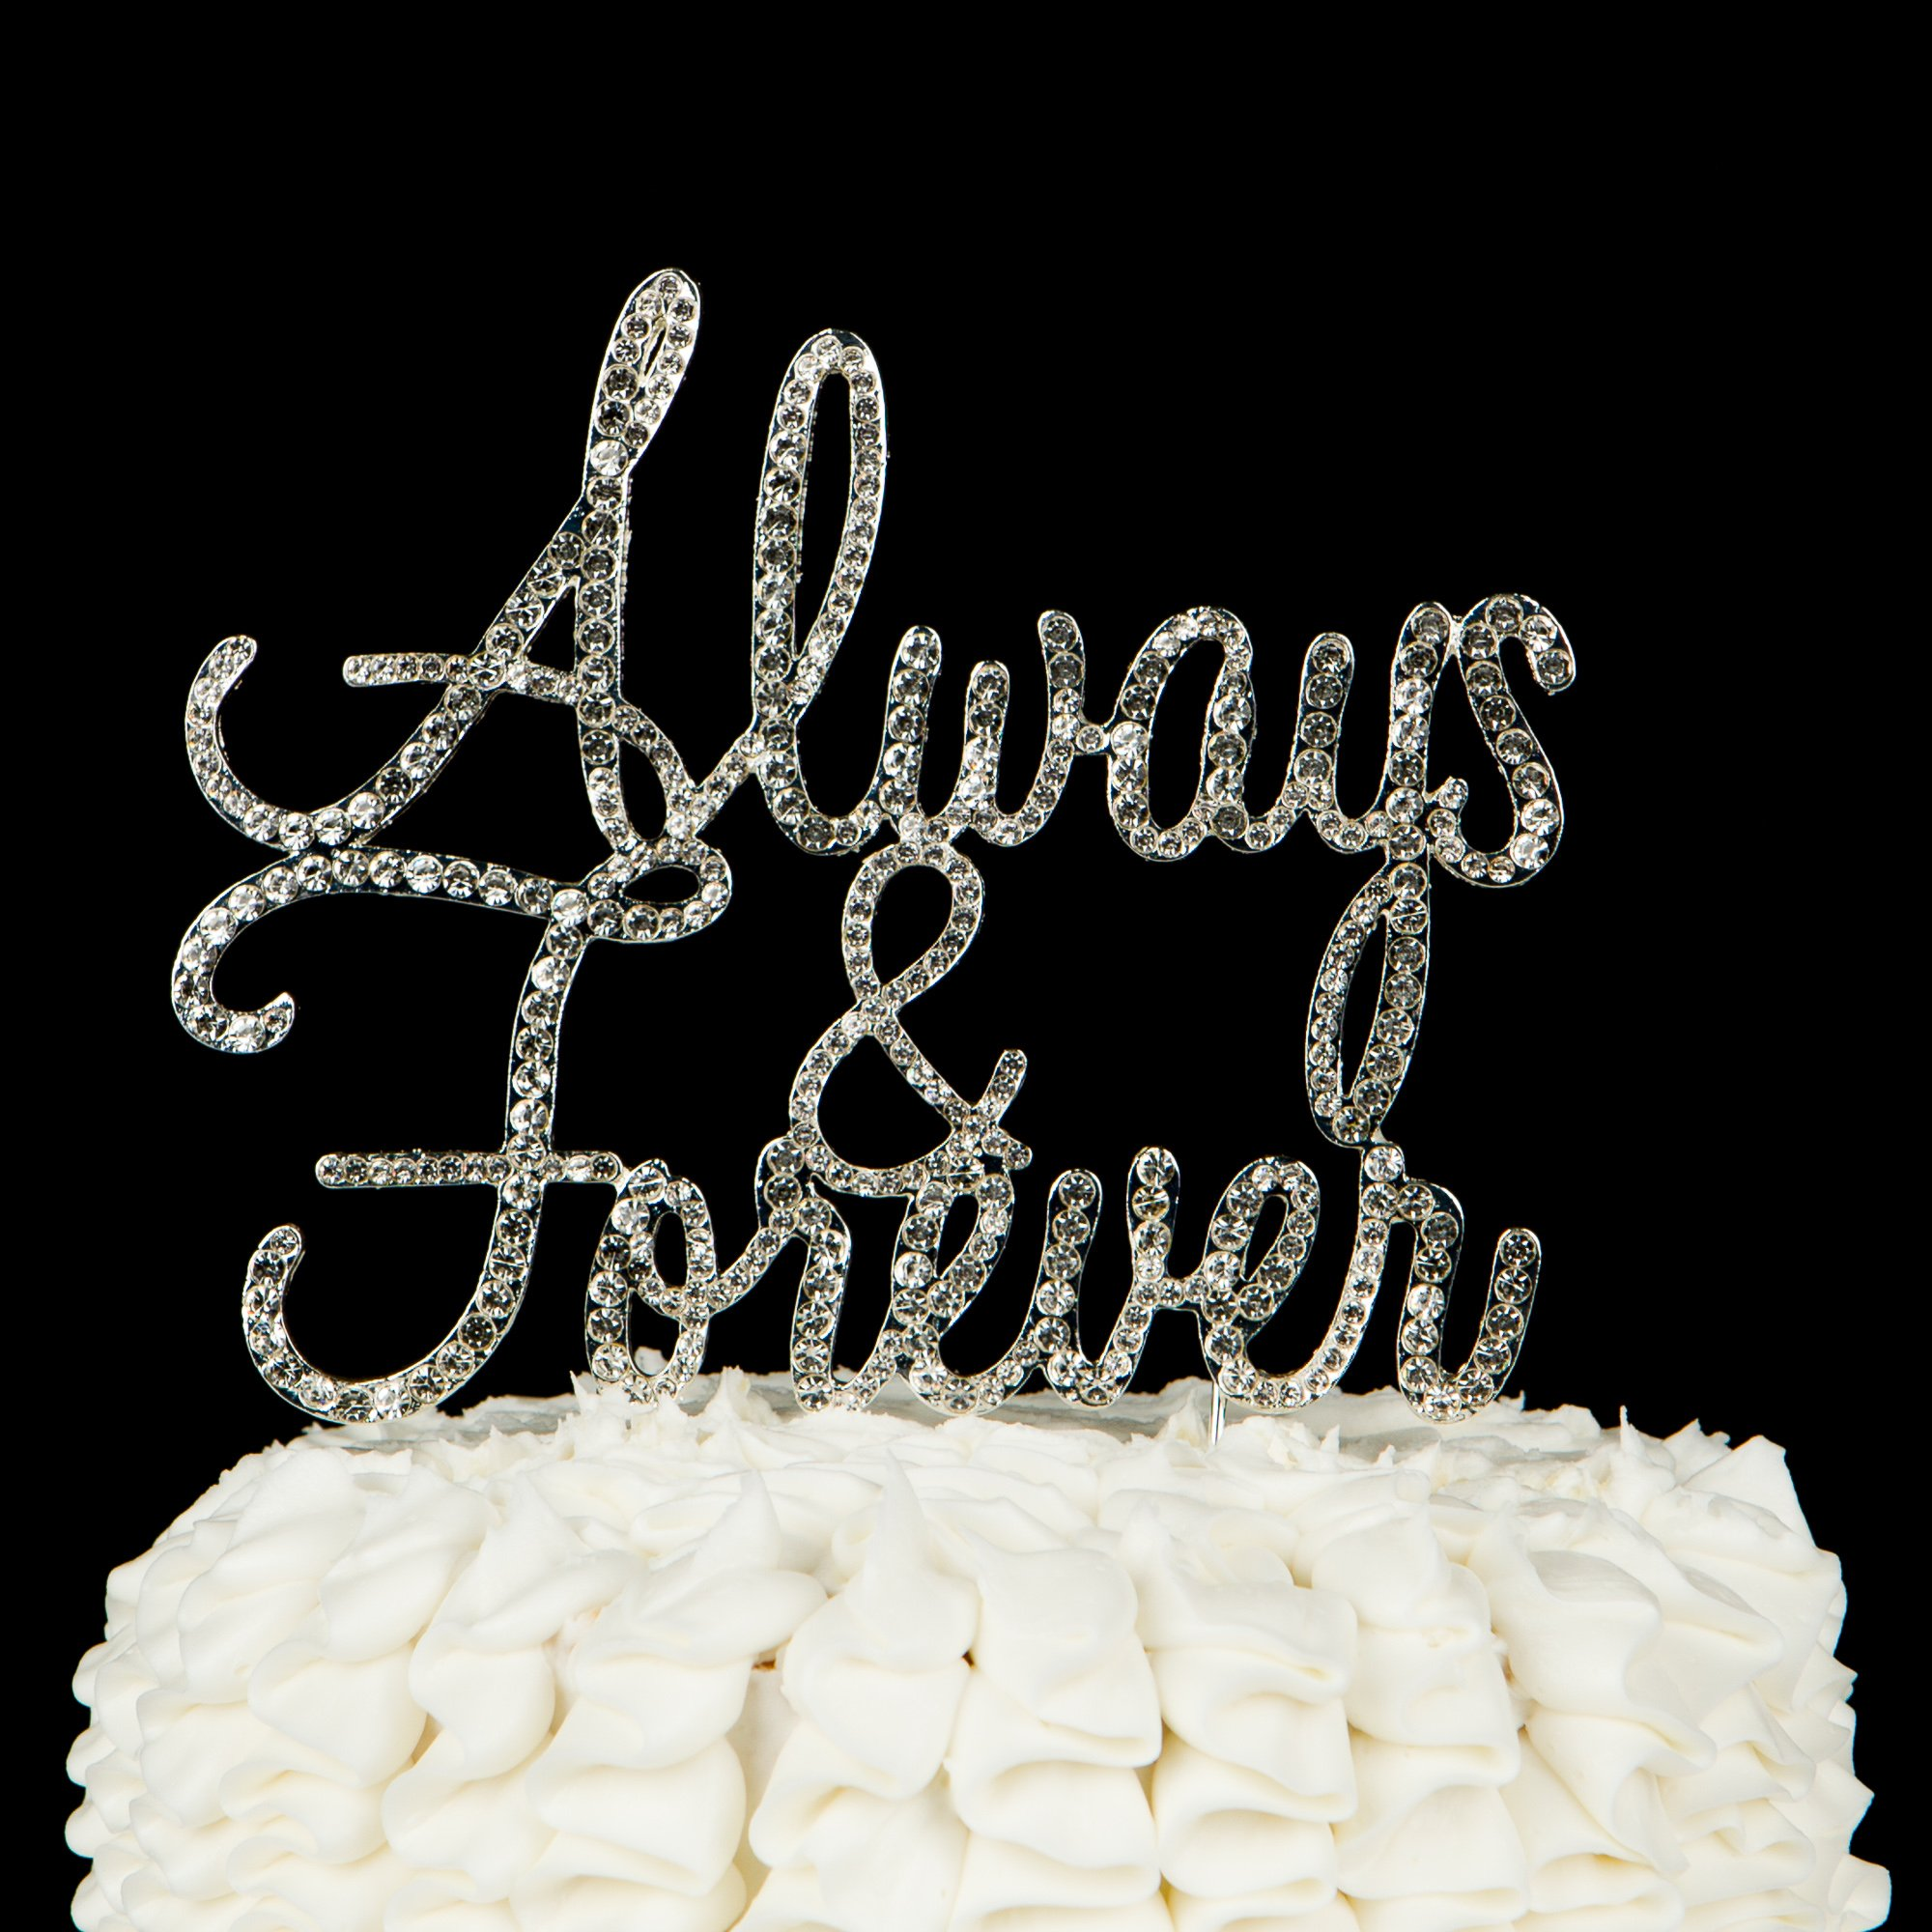 Ella Celebration Always and Forever Wedding Cake Topper, Silver Romantic Rhinestone Decoration (Always & Forever) (Silver) by Ella Celebration (Image #3)